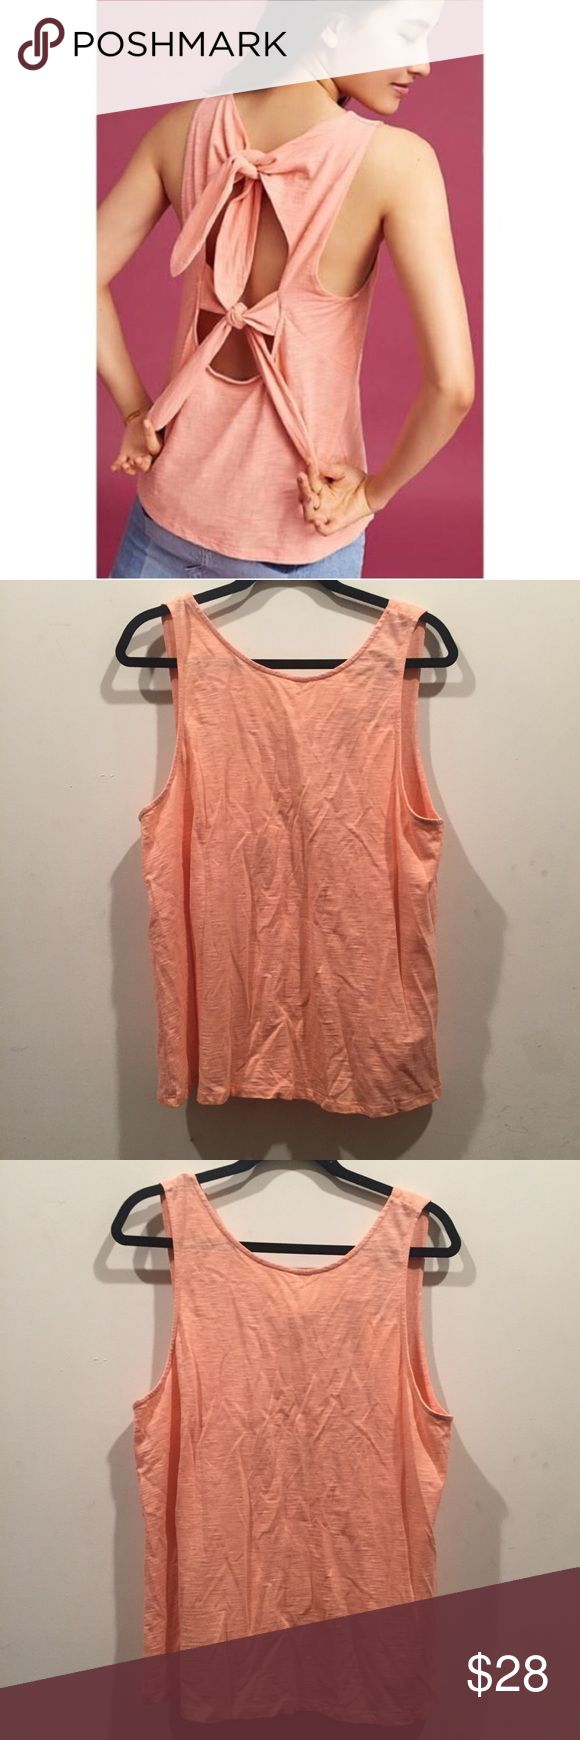 ☀️NWT Anthropologie Ro&De Bow Back Tank Top Anthropologie Ro&De Bow Back Tank Top Blouse in large, color peach, New with tags Anthropologie Tops Blouses